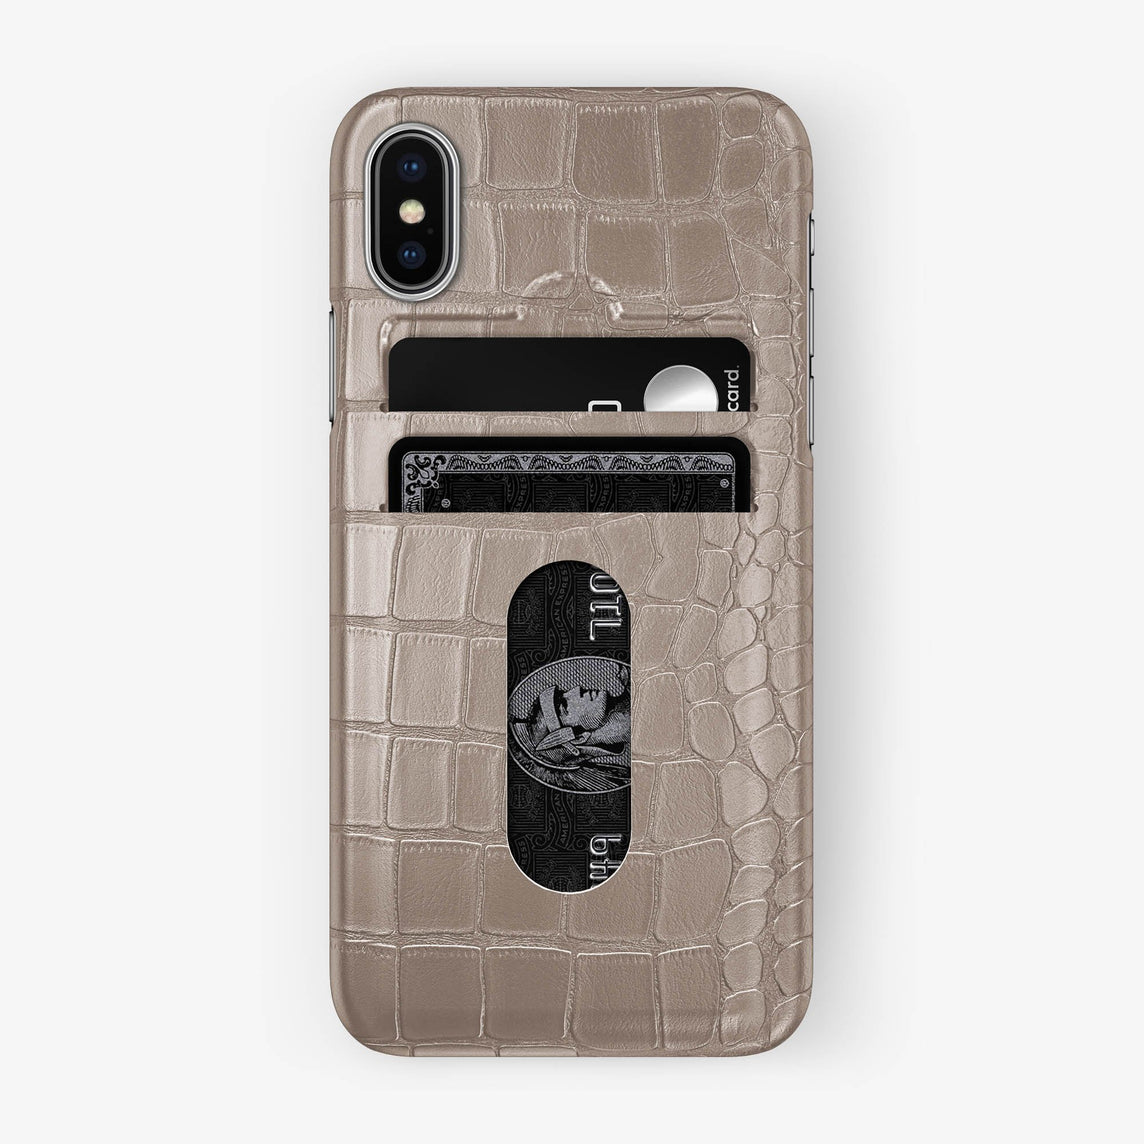 Alligator Card Holder Case iPhone X/Xs | Latte - Stainless Steel with-personalization